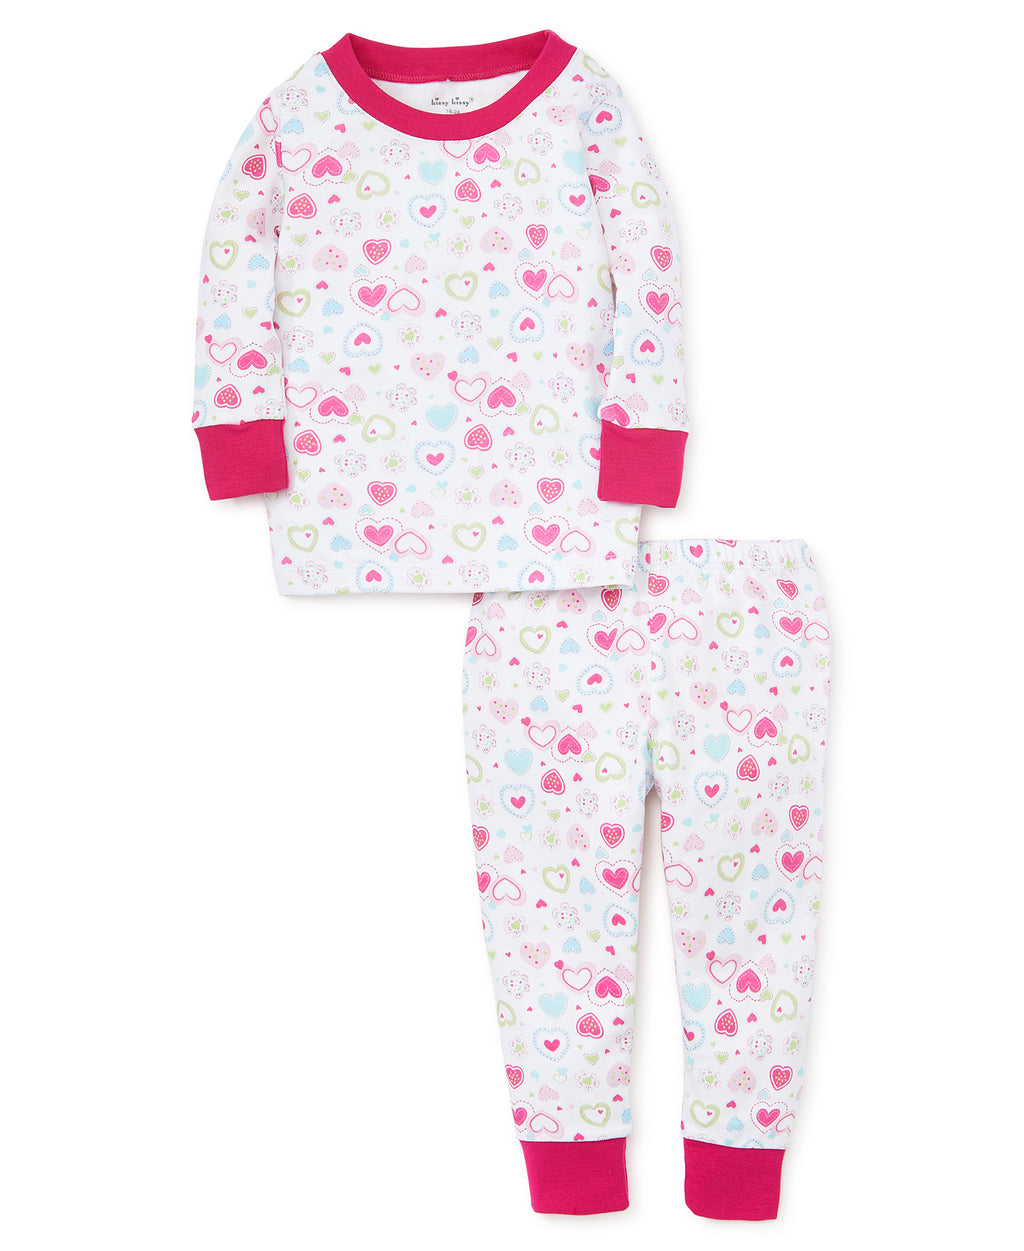 Happy Hearts Toddler Pajama Set